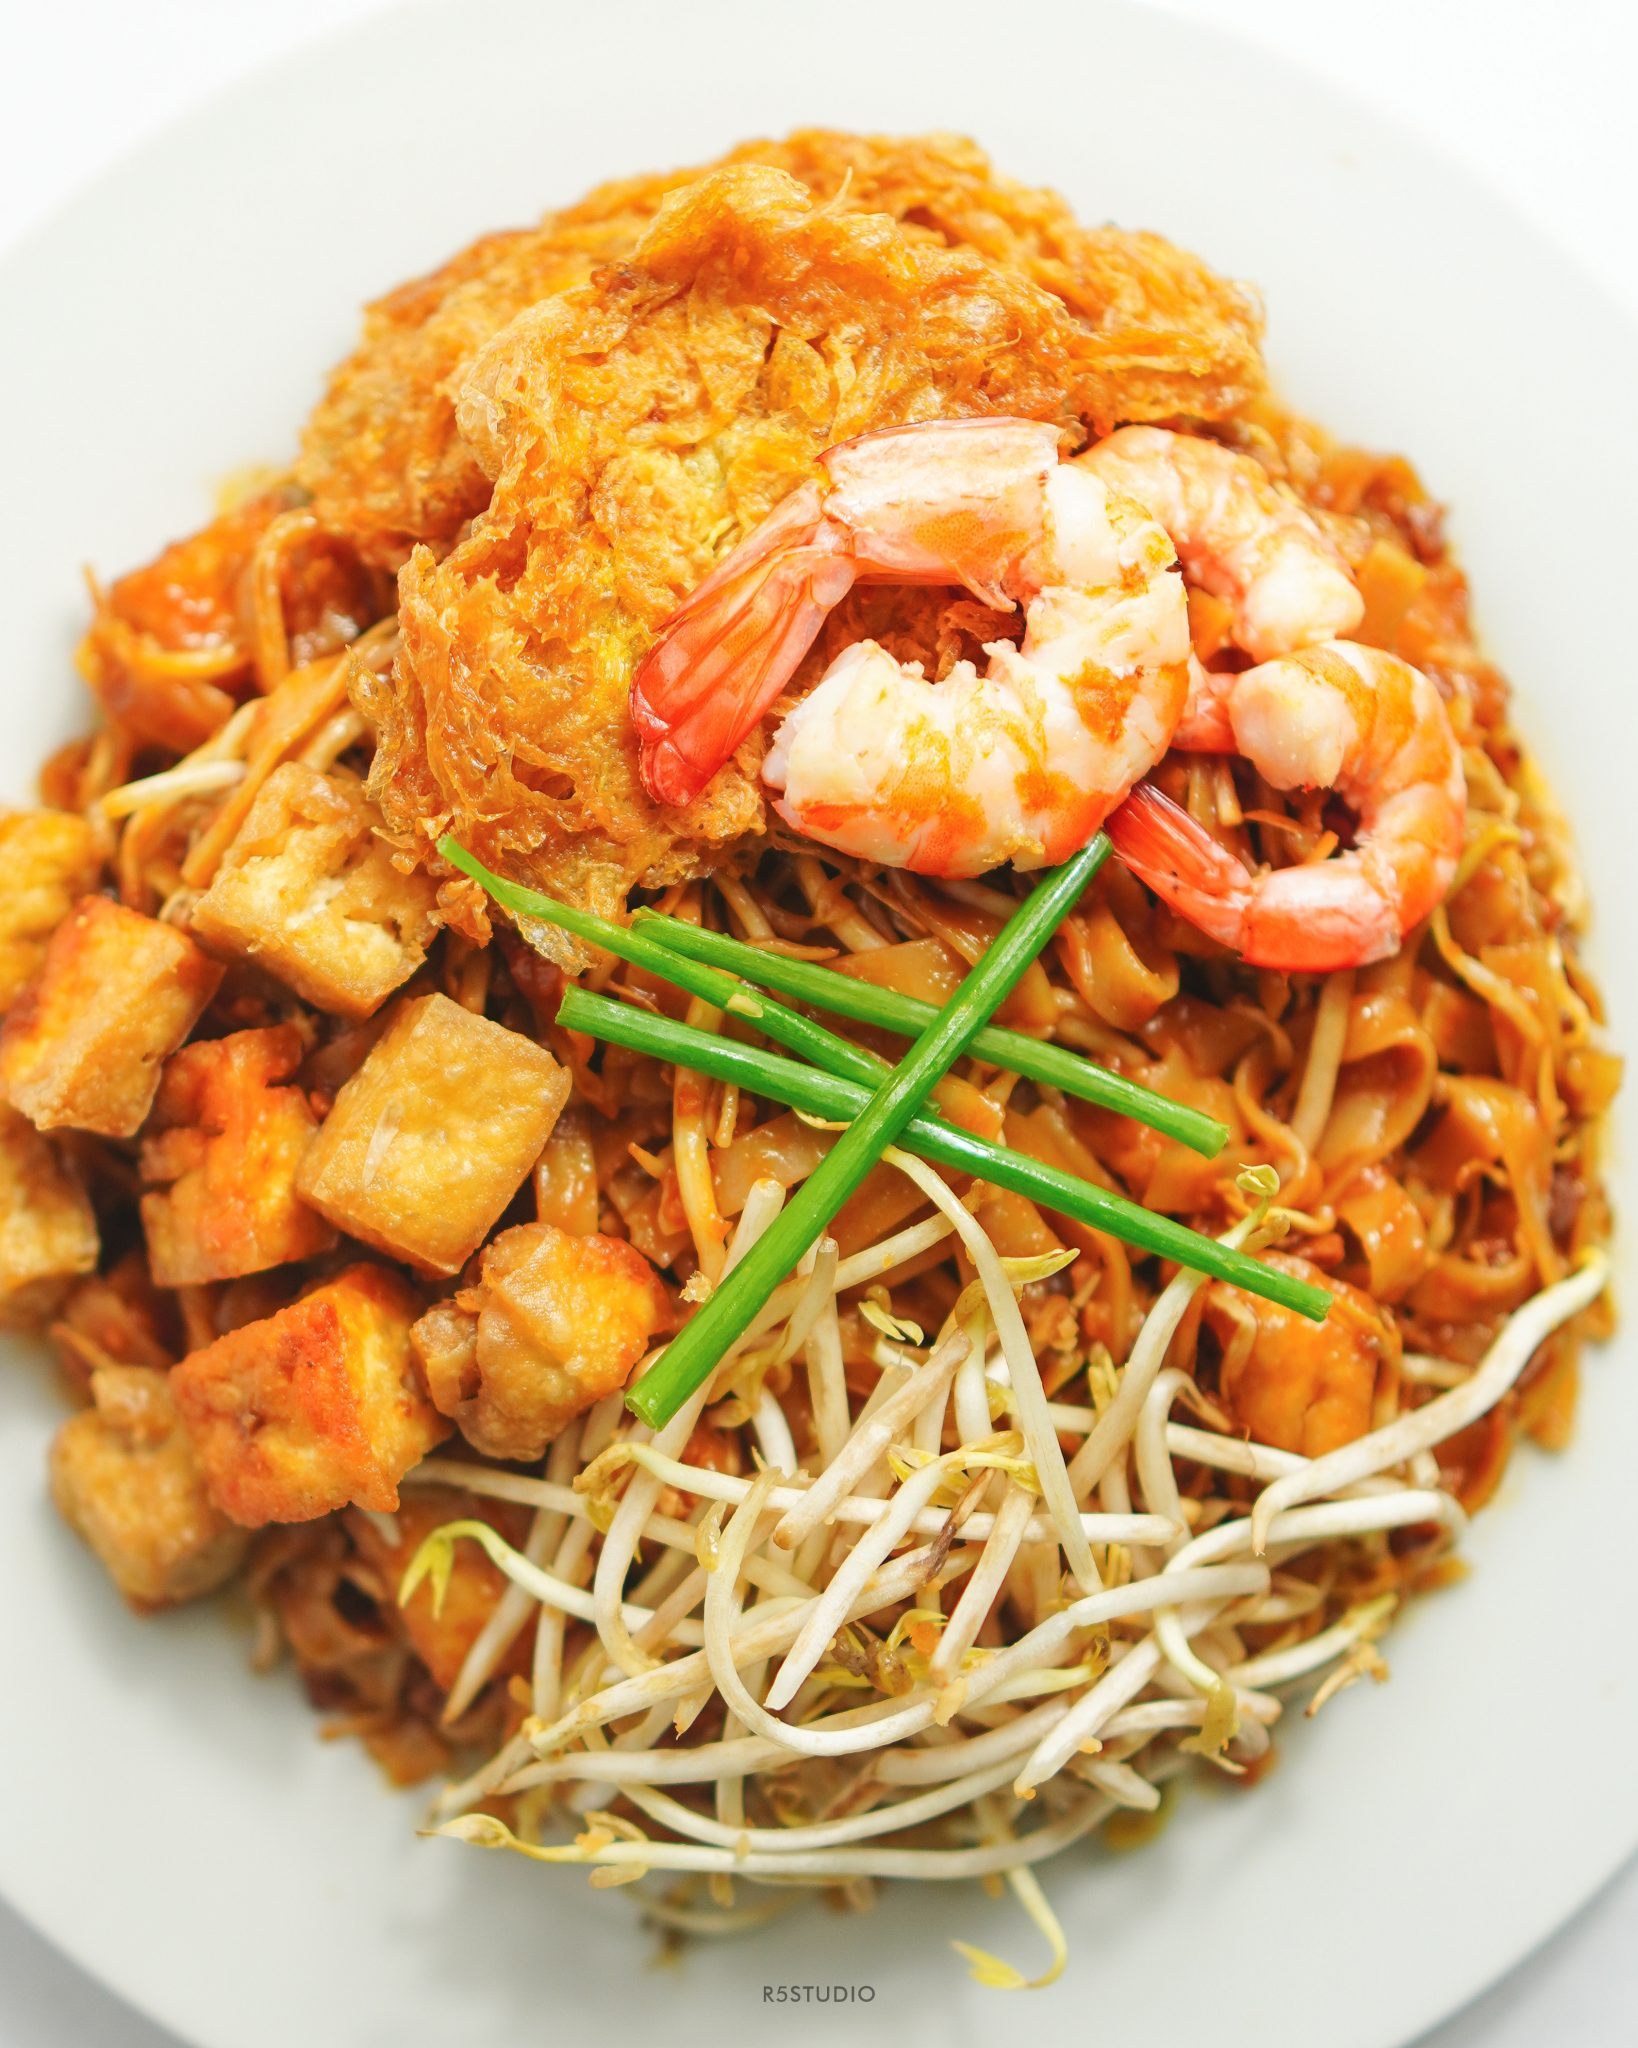 Puesto is known for its pad thai, which comes in three variants: pescatarian (in photo), vegan, and vegetarian. Other dishes are also offered with meat substitutes